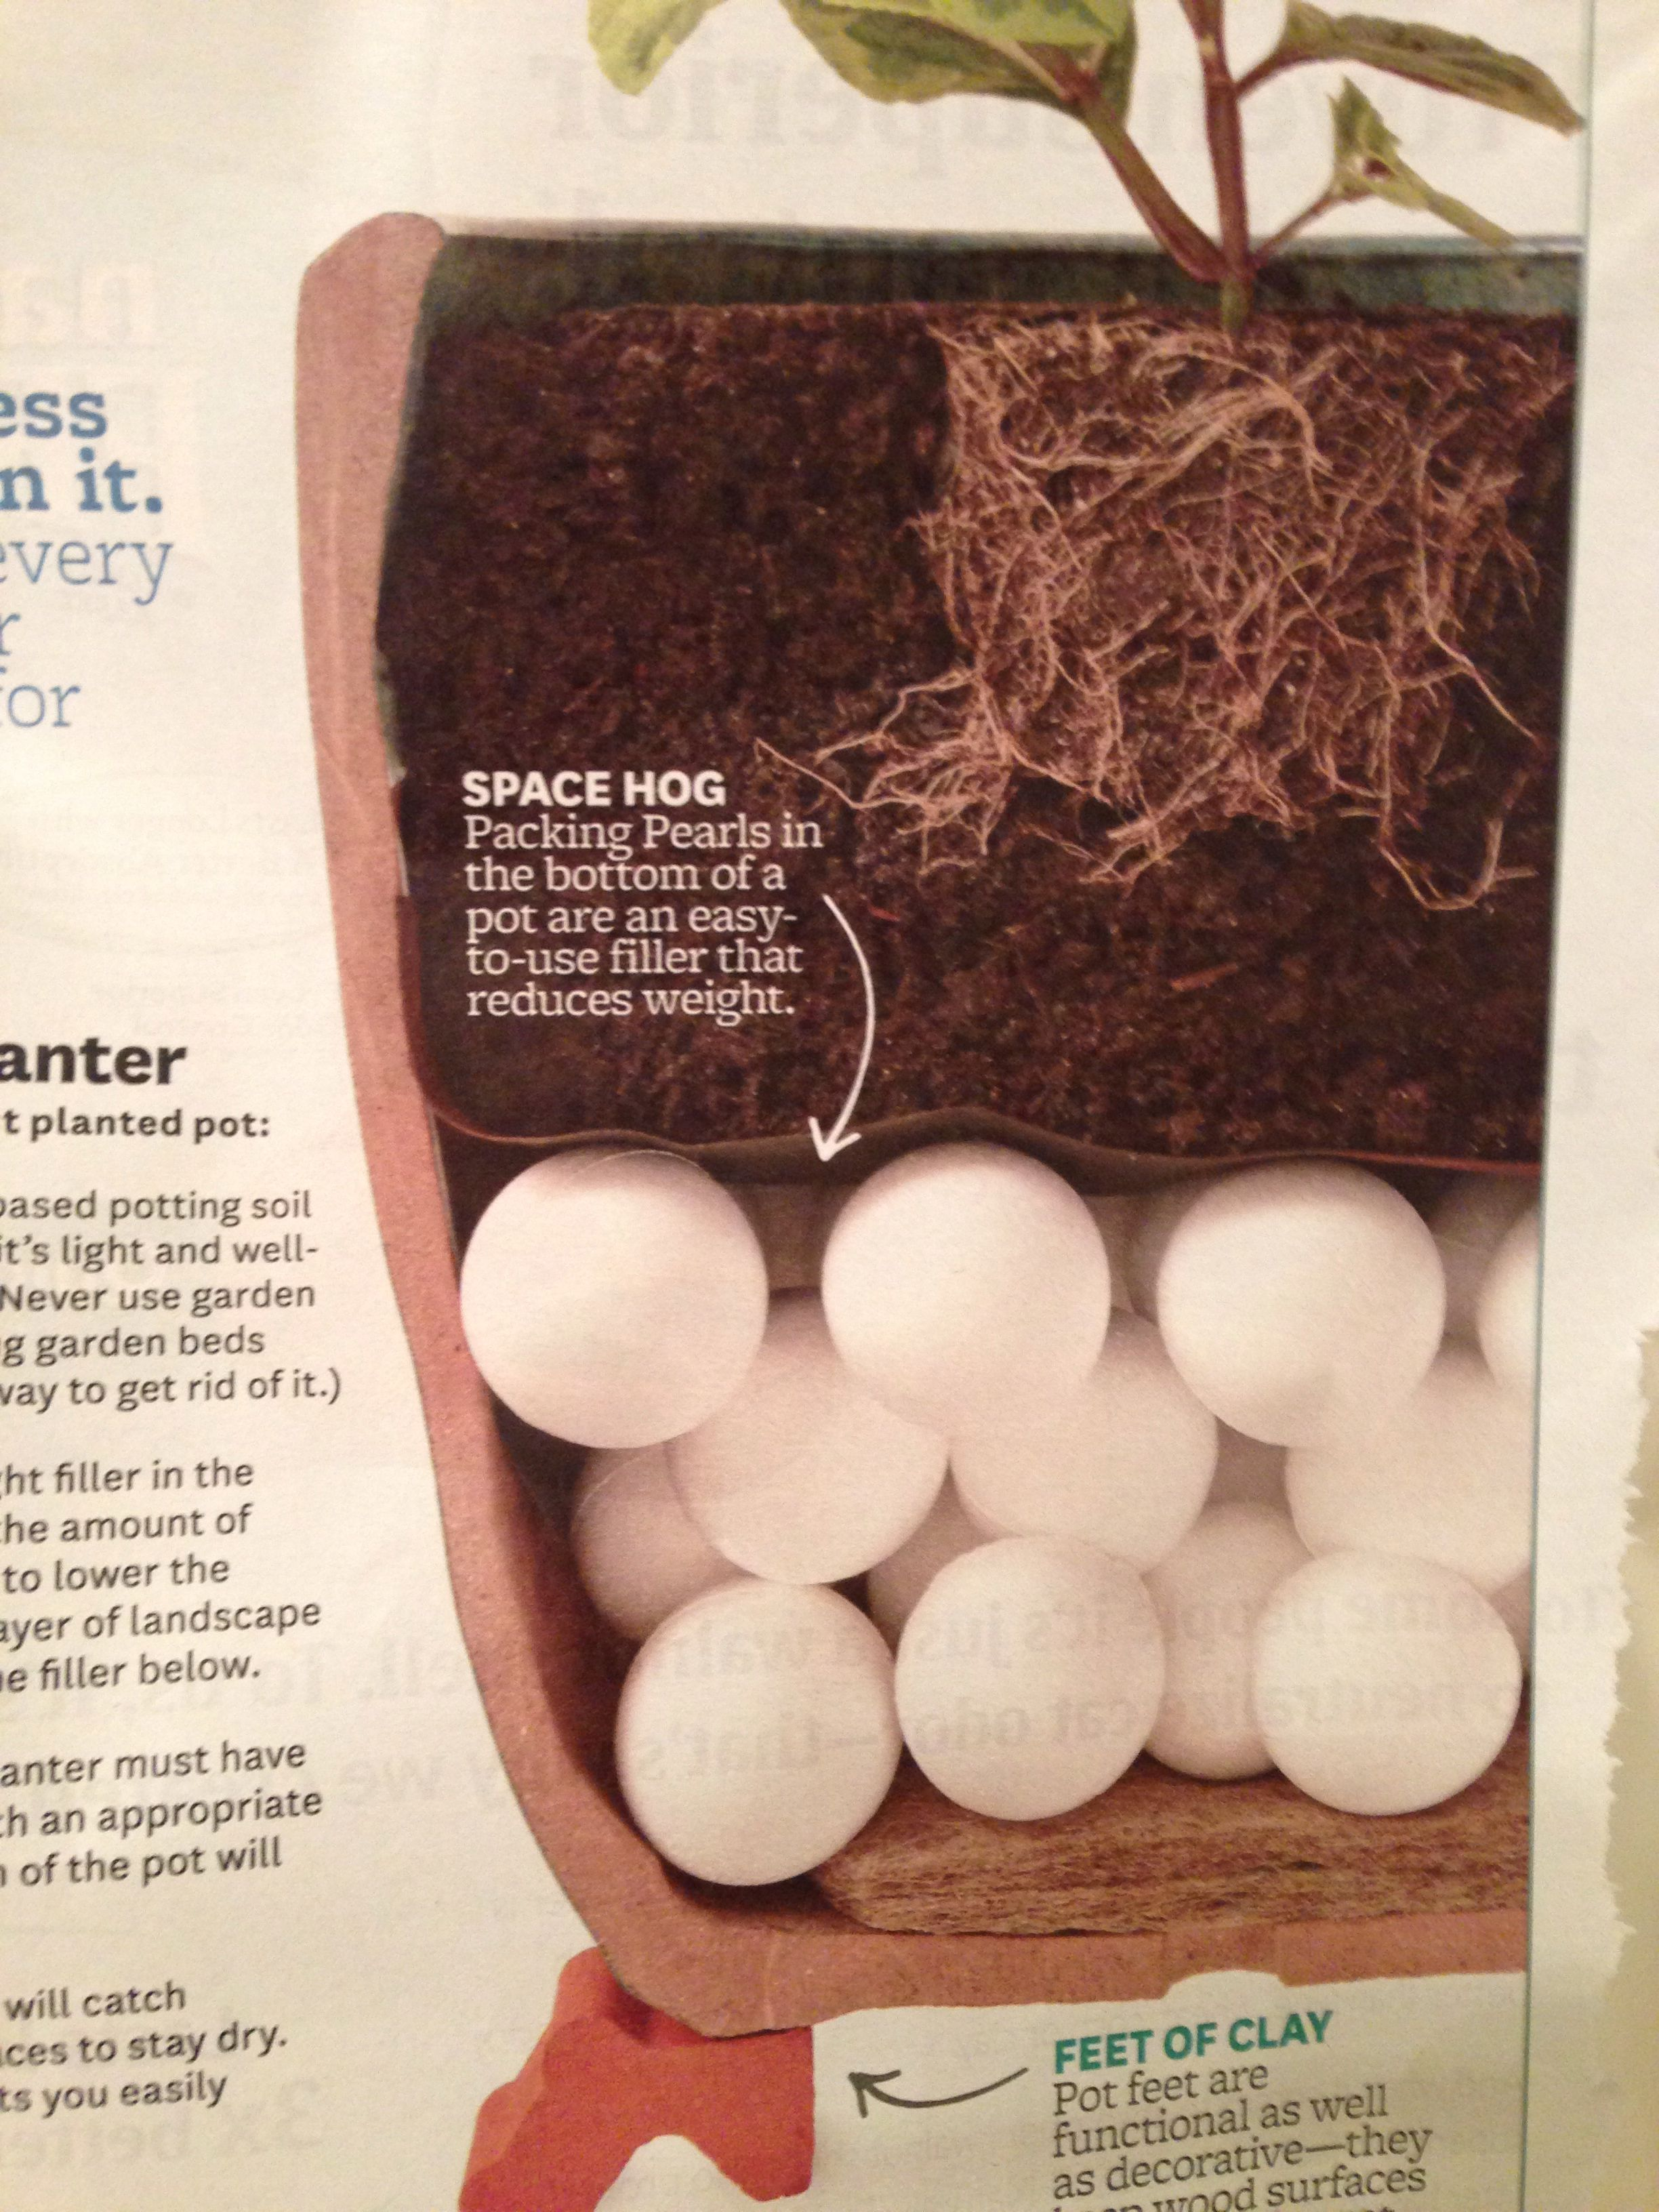 Anatomy of a planter: use a lightweight filler on the bottom